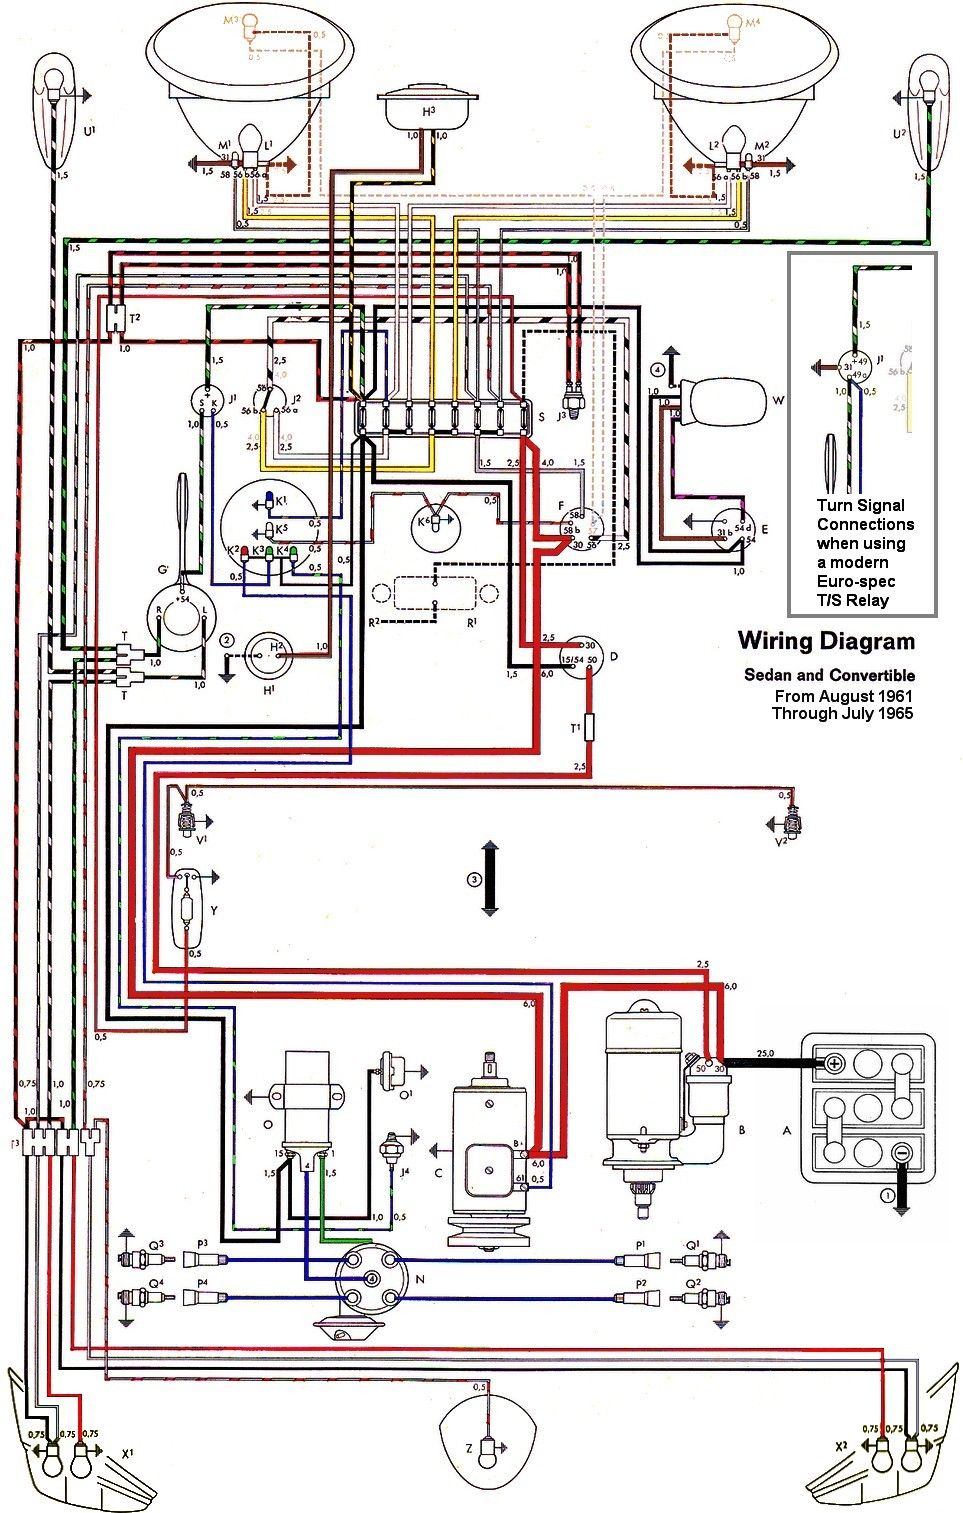 2235472c26e9b61112a110100d6ddea3 wiring diagram in color 1964 vw bug, beetle, convertible the vw beetle wiring harness routing at edmiracle.co